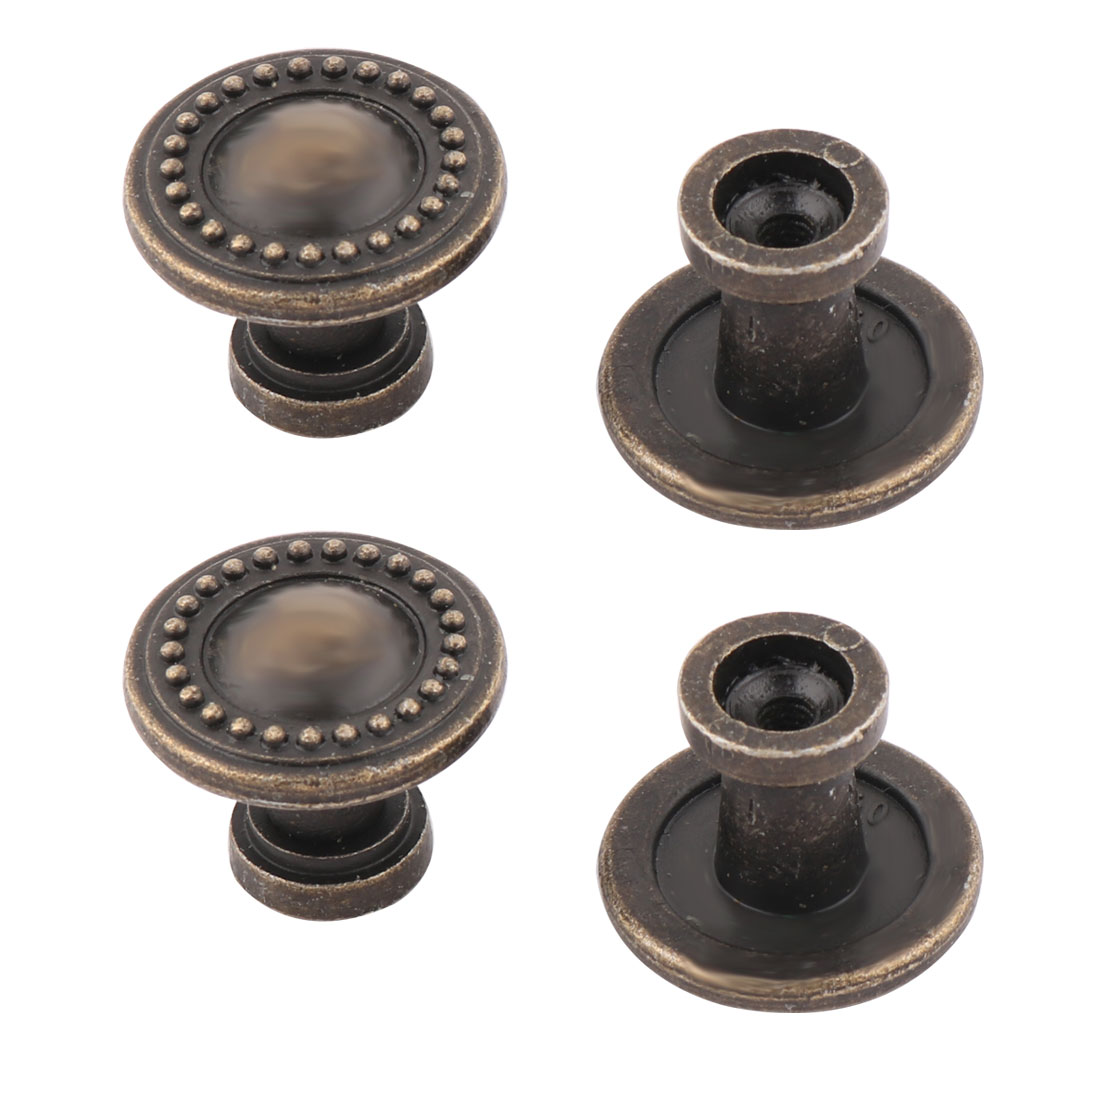 Household Metal Round Shape Retro Style Cabinet Cupboard Door Handle Pull Knob Bronze Tone 4 Pcs